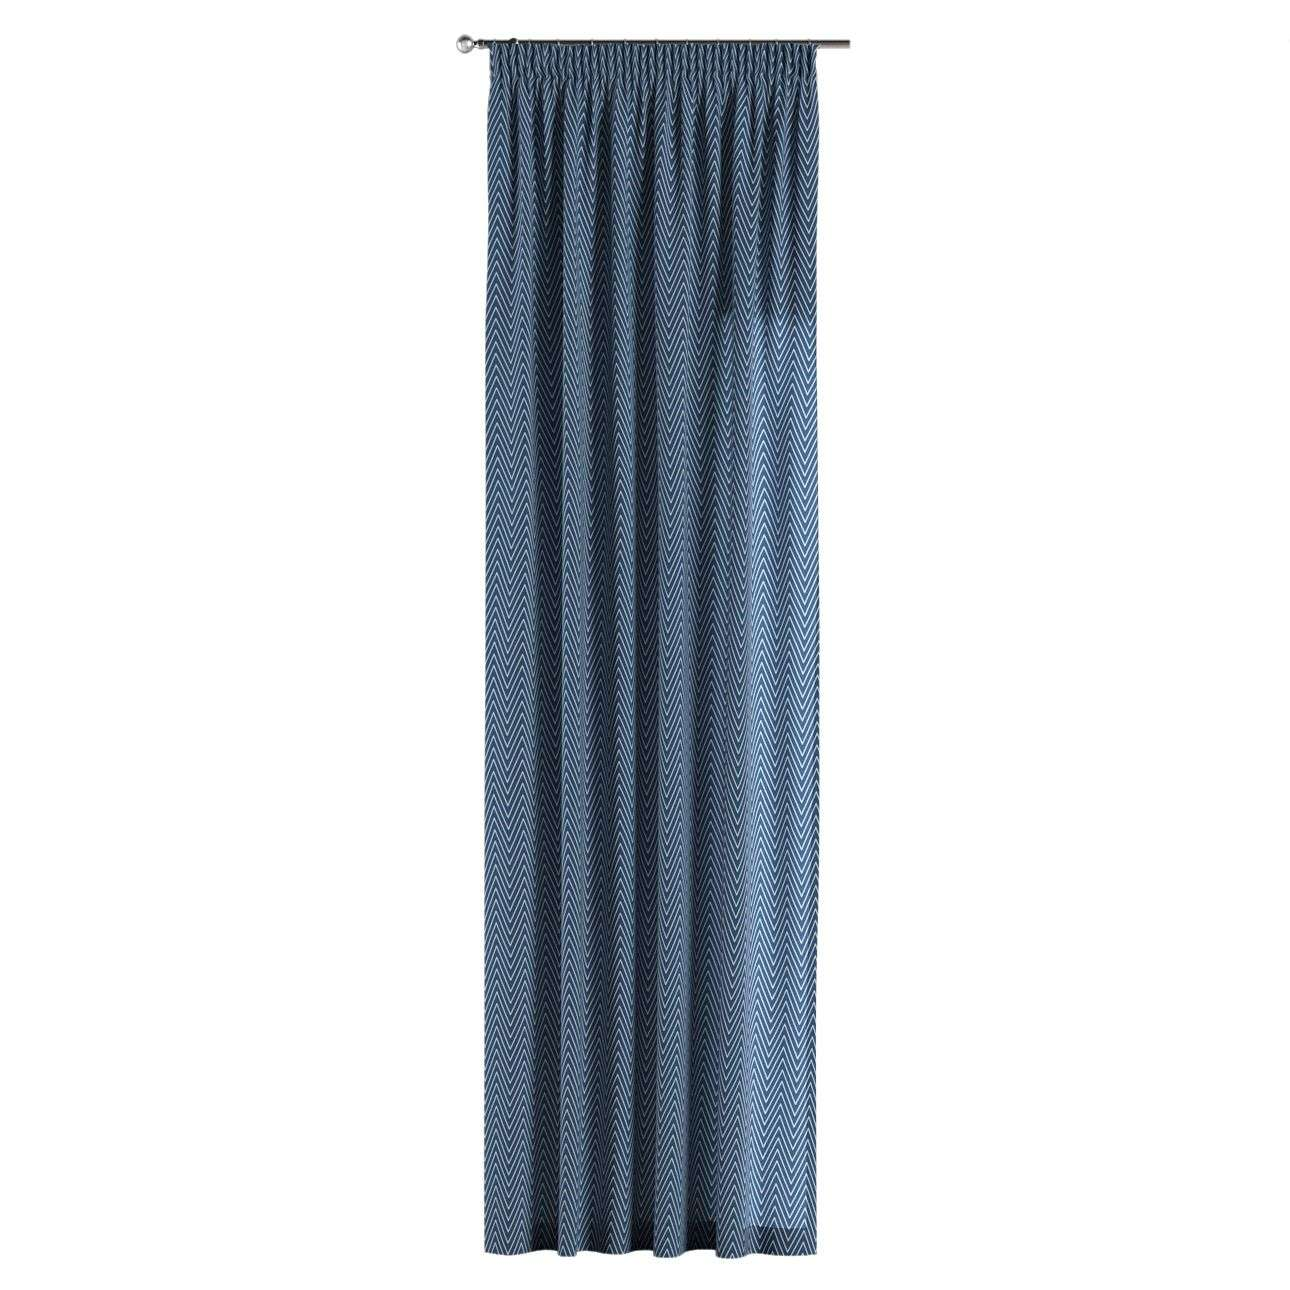 Pencil pleat curtains in collection Brooklyn, fabric: 137-88